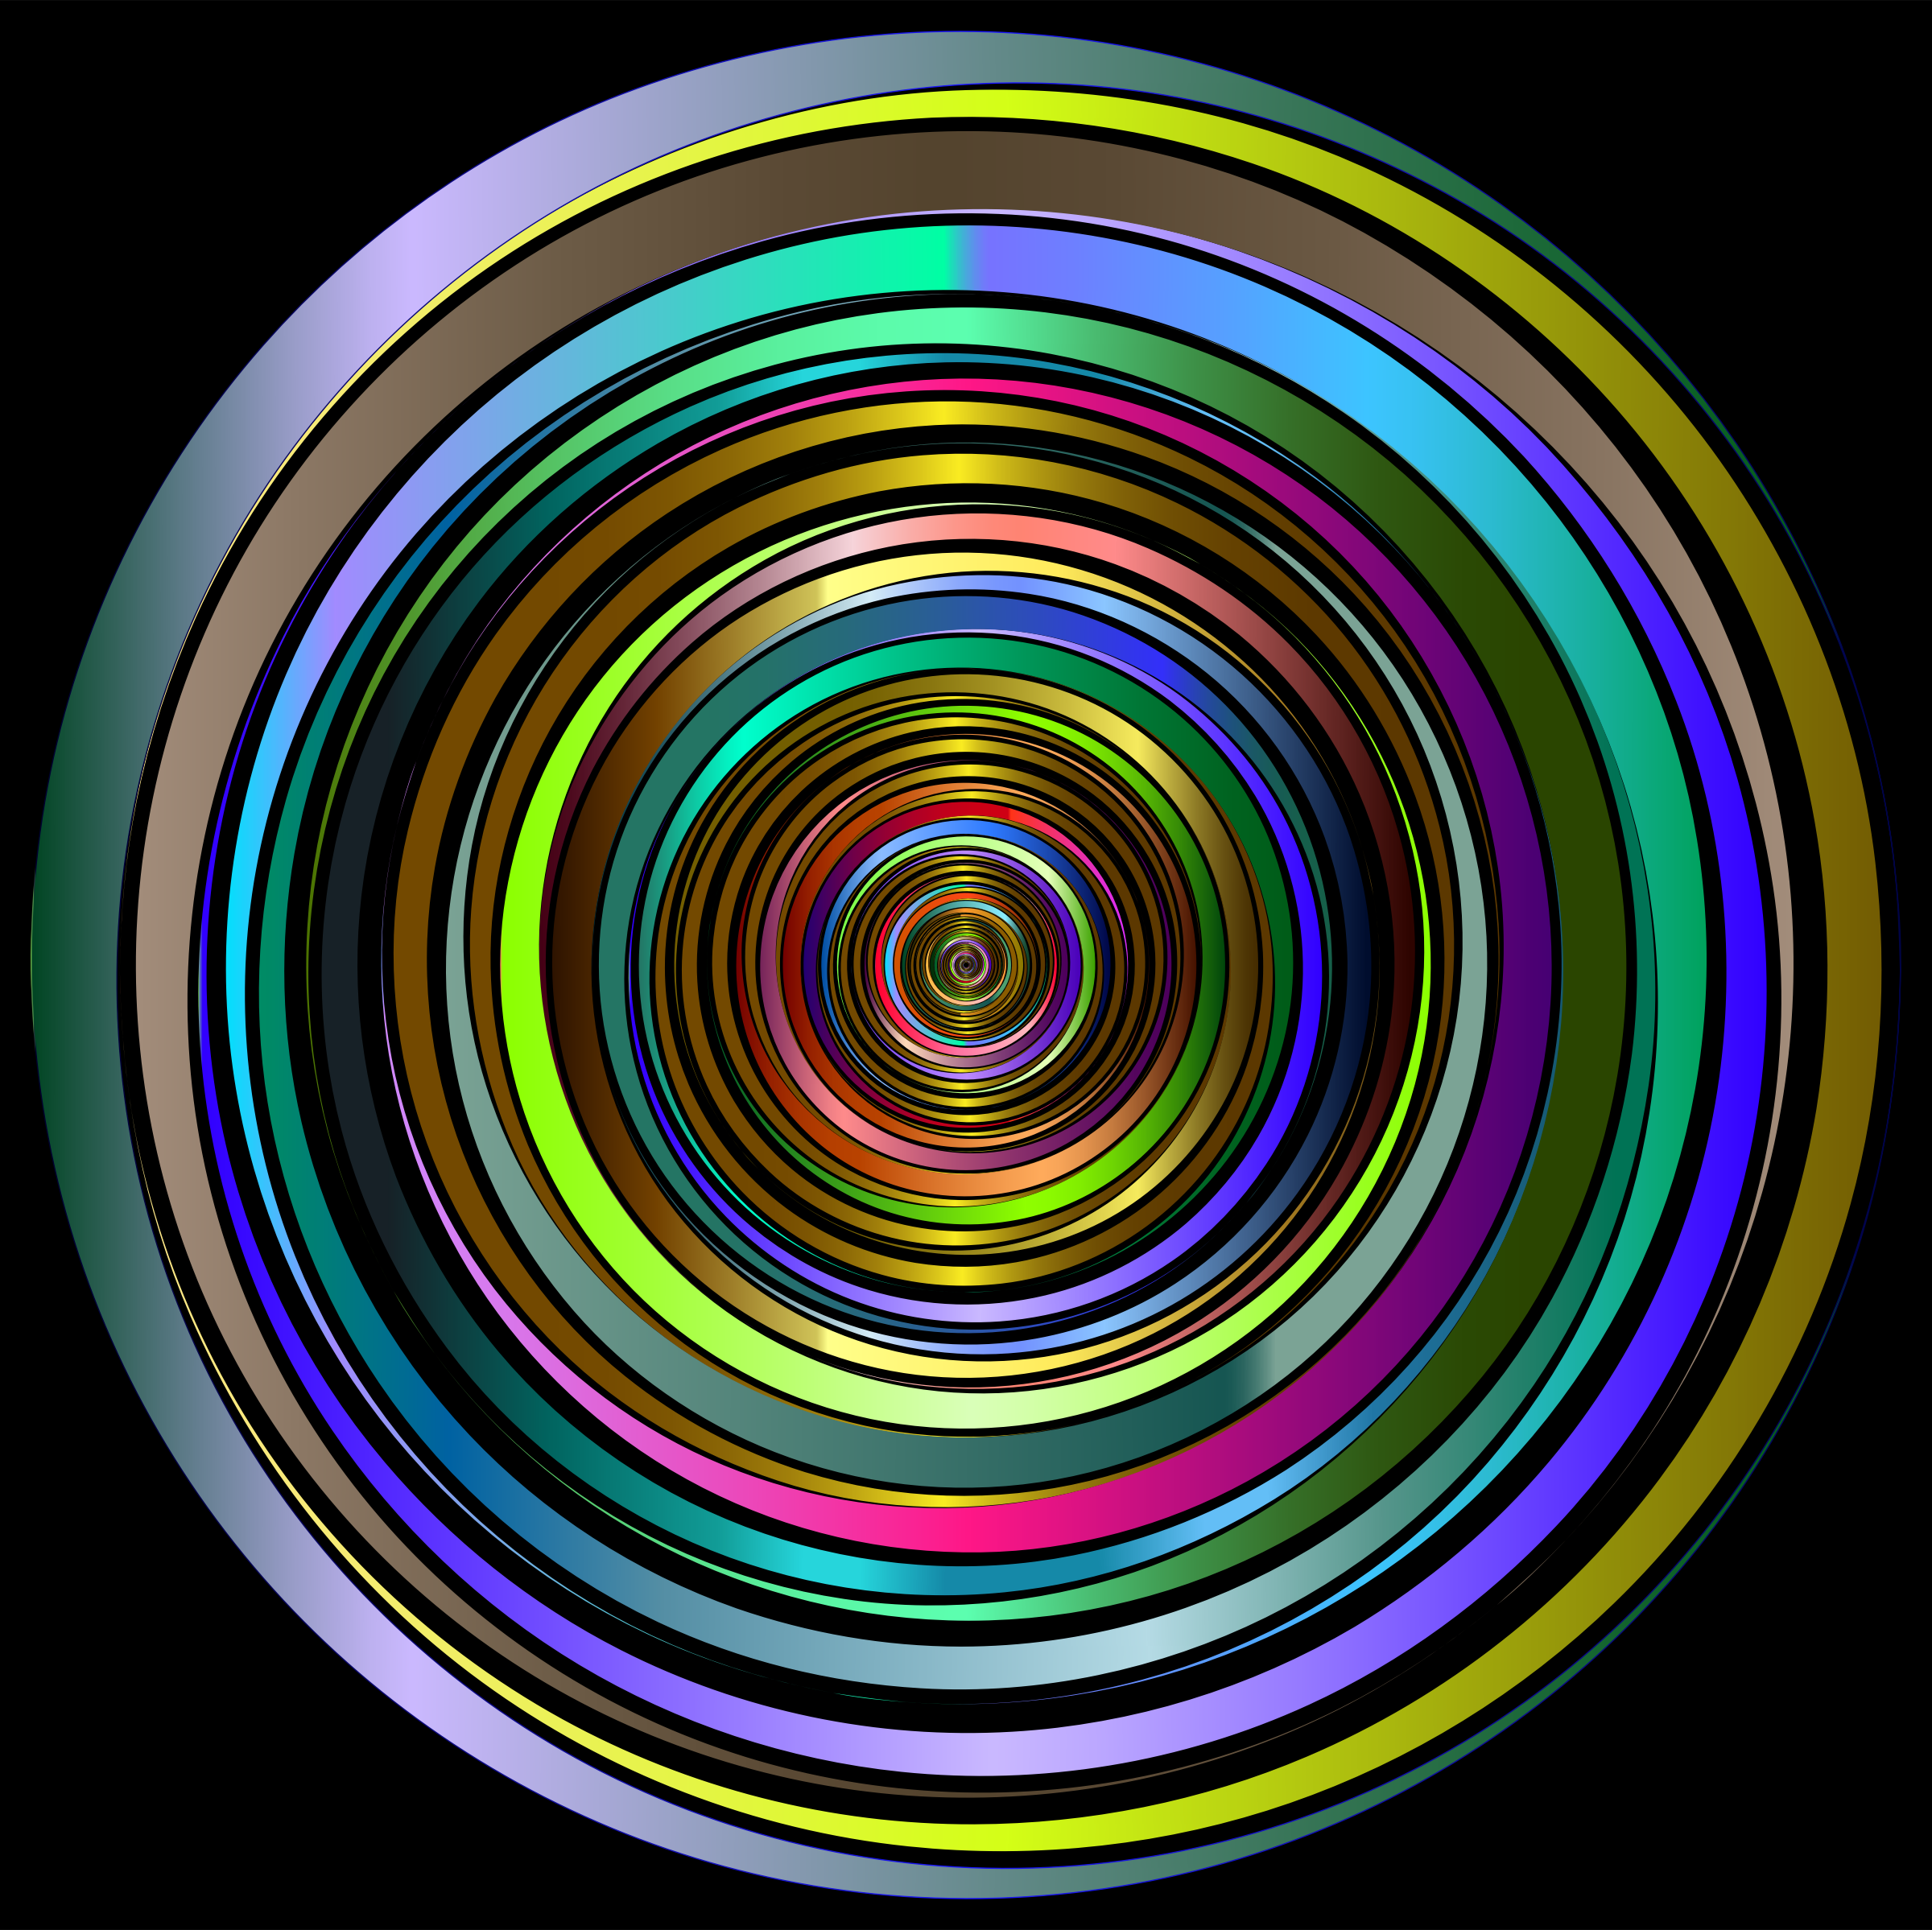 Prismatic Abstract Vortex 18 2 by GDJ